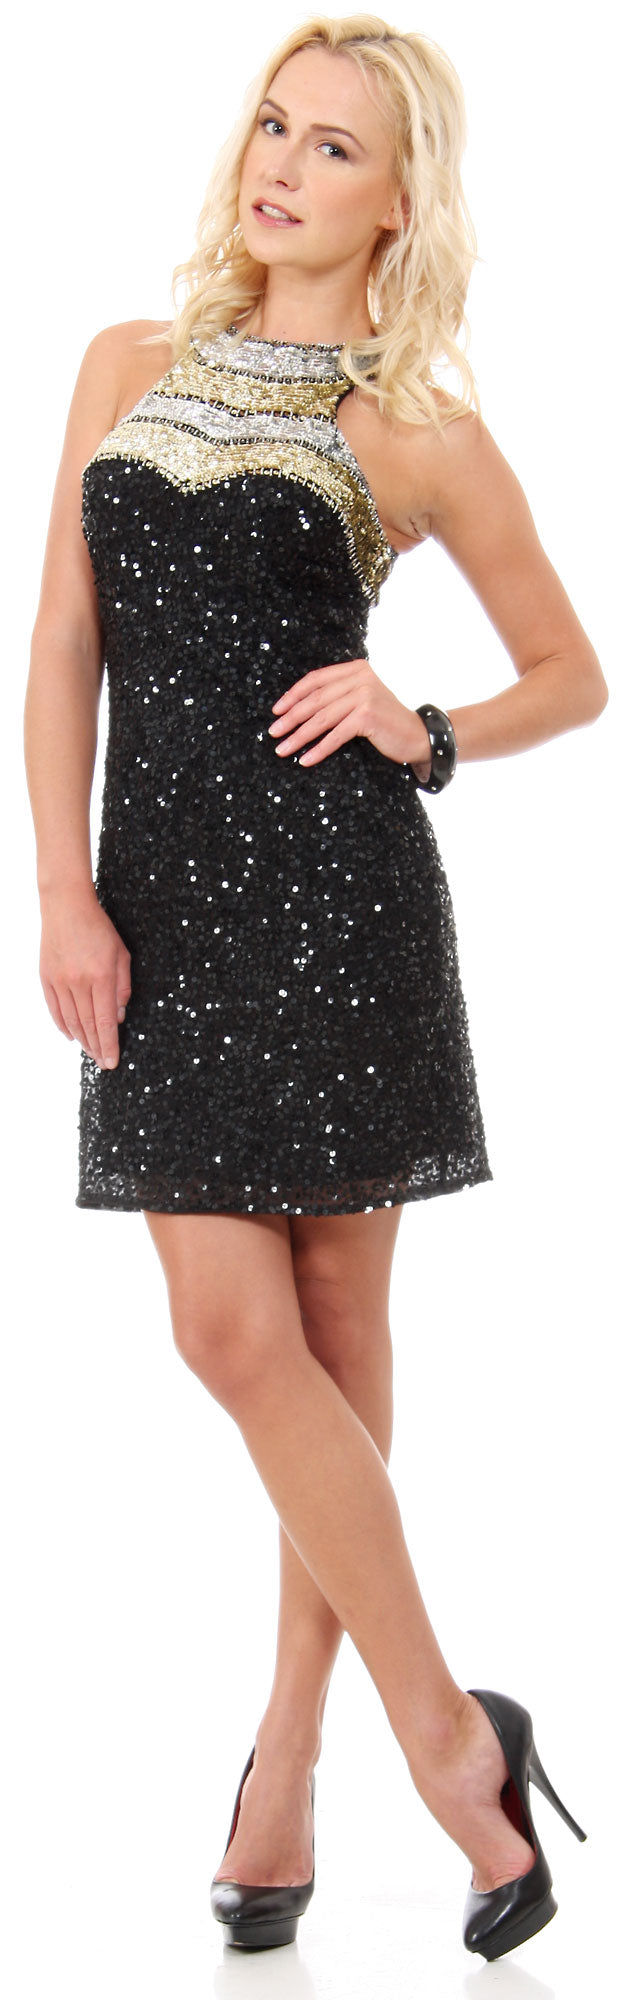 Main image of Halter Neck Exotic Short Sequined Formal Party Dress